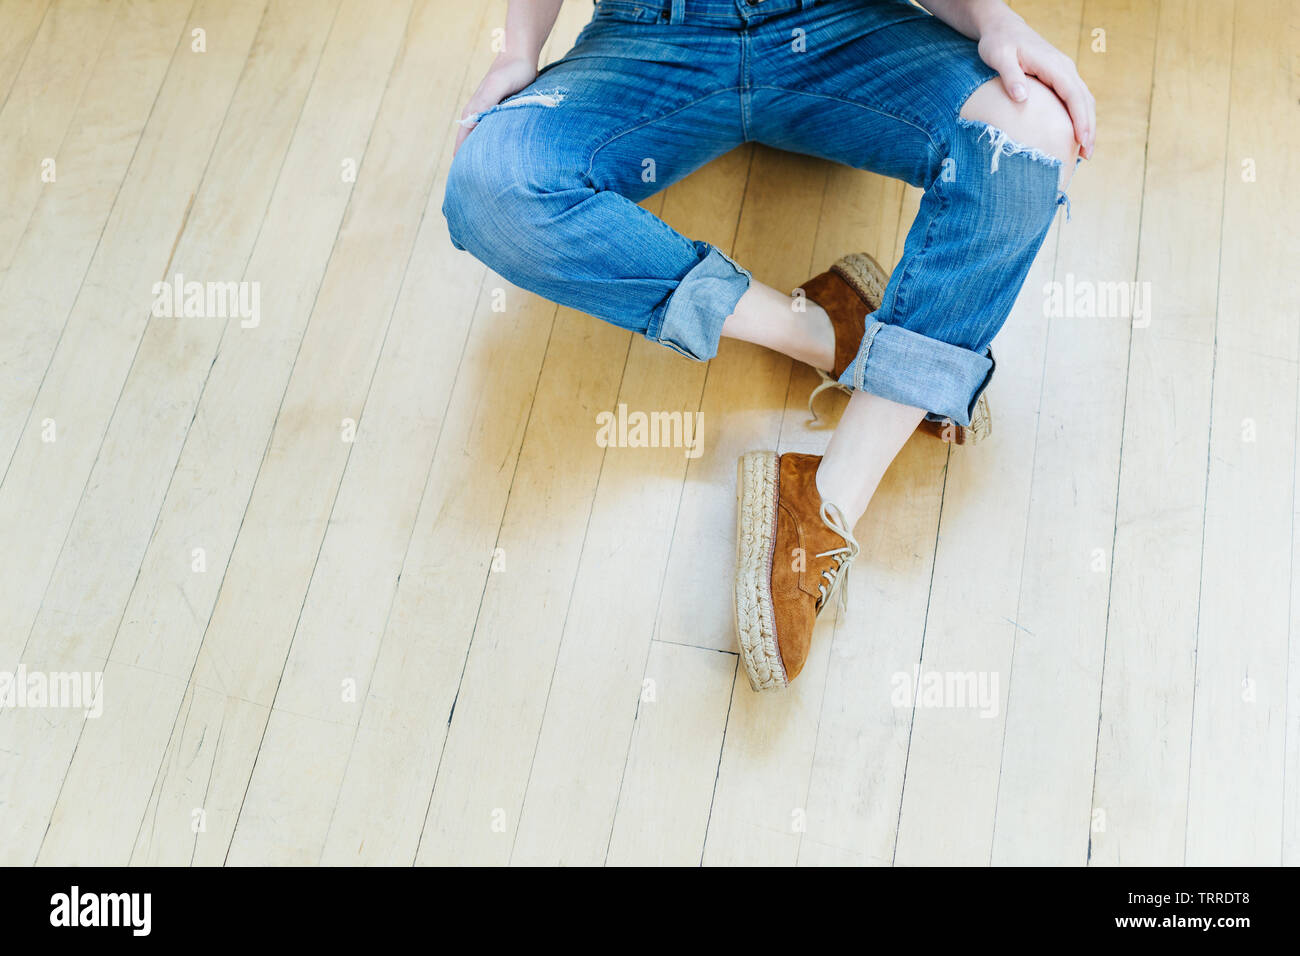 Young thin woman, wearing torn cuffed blue jeans and brown lace up suede and jute shoes, relaxes on wood floor with legs crossed and hands on knees - Stock Image